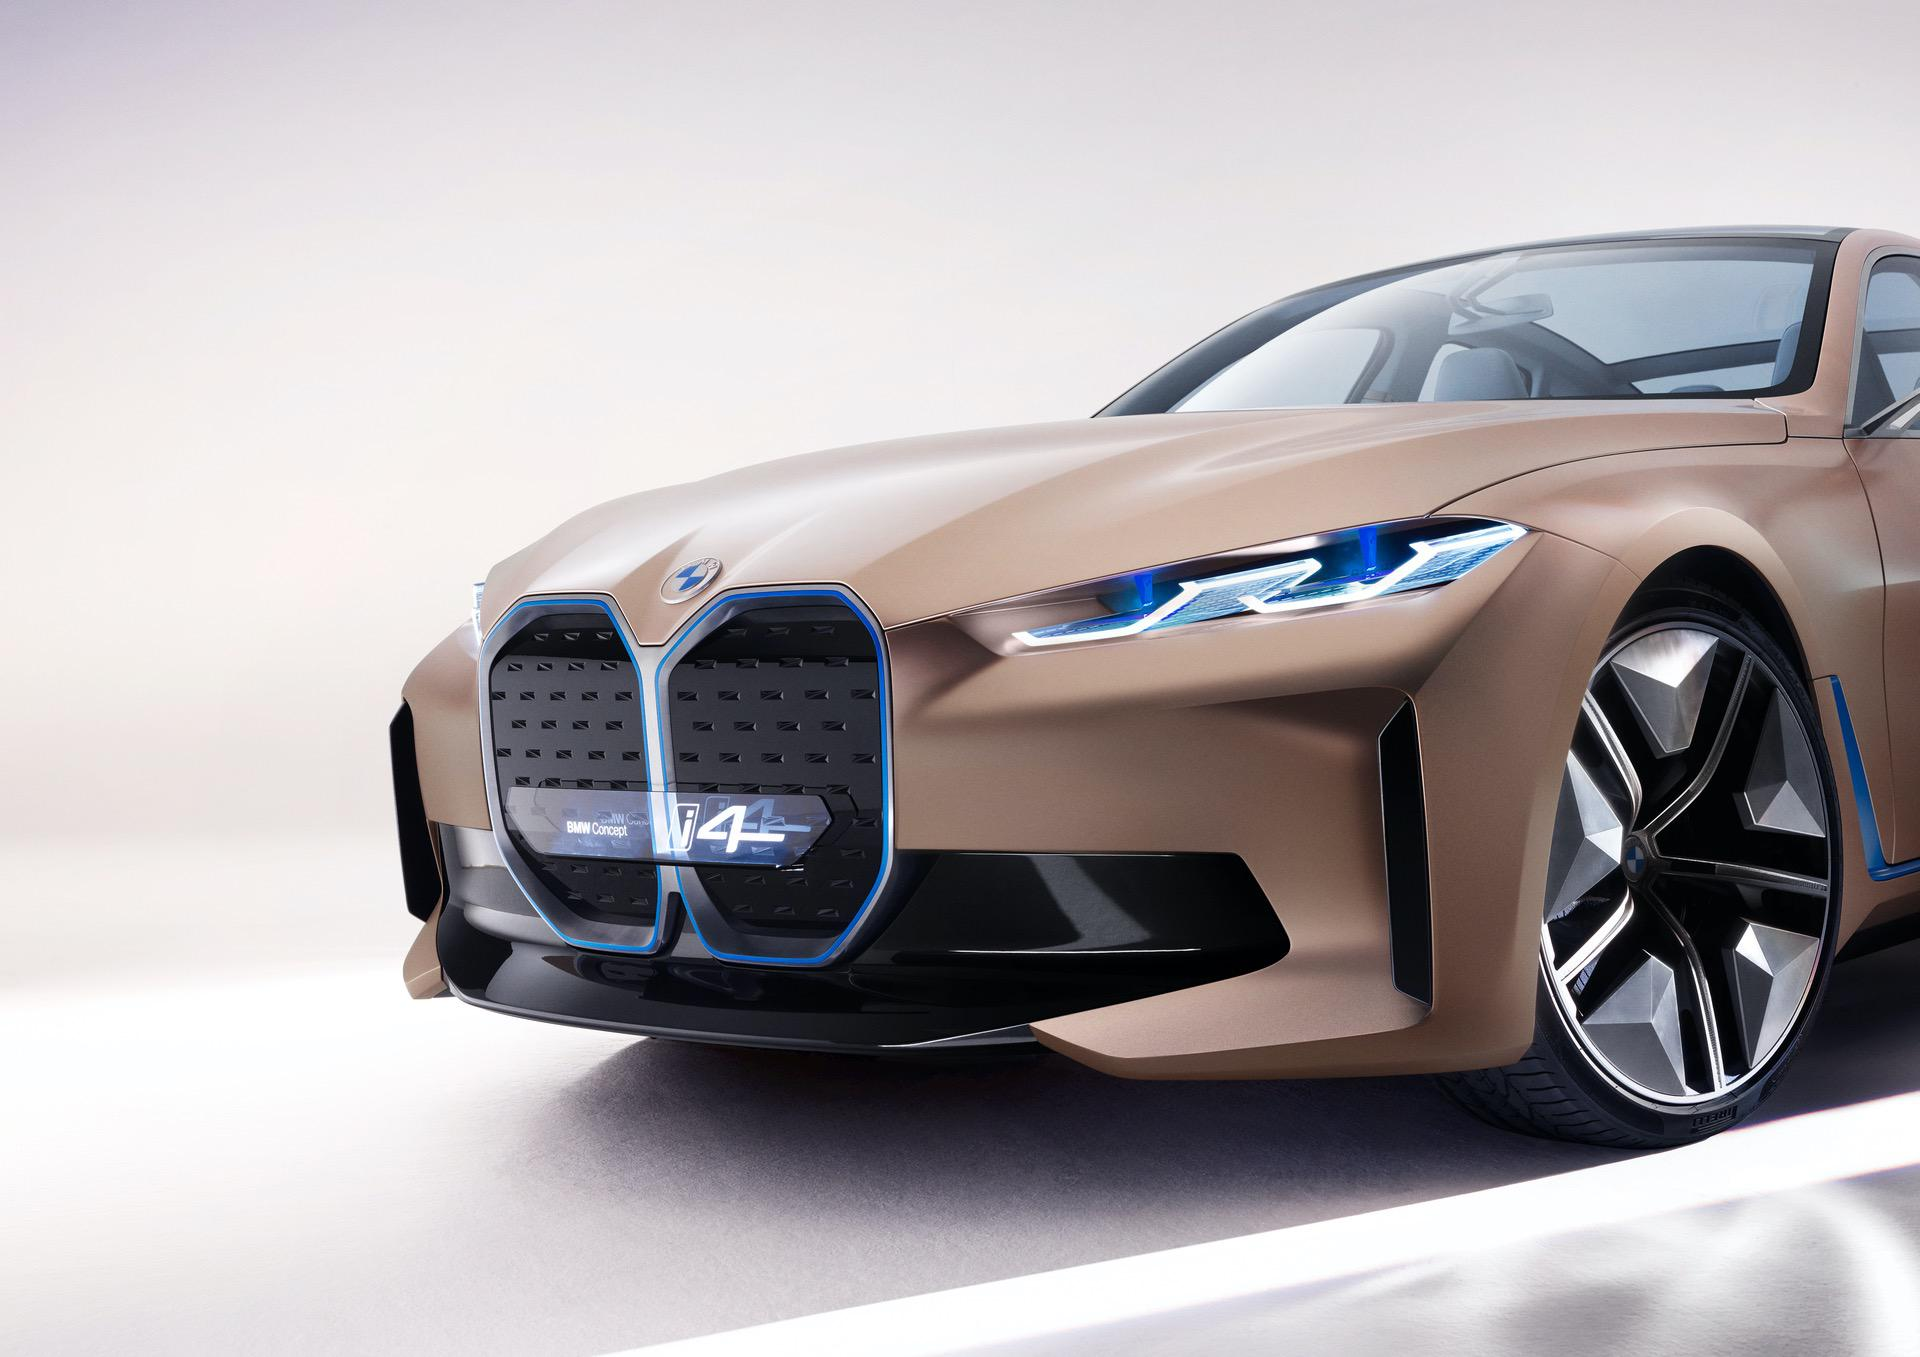 BMW Concept i4 images studio 06